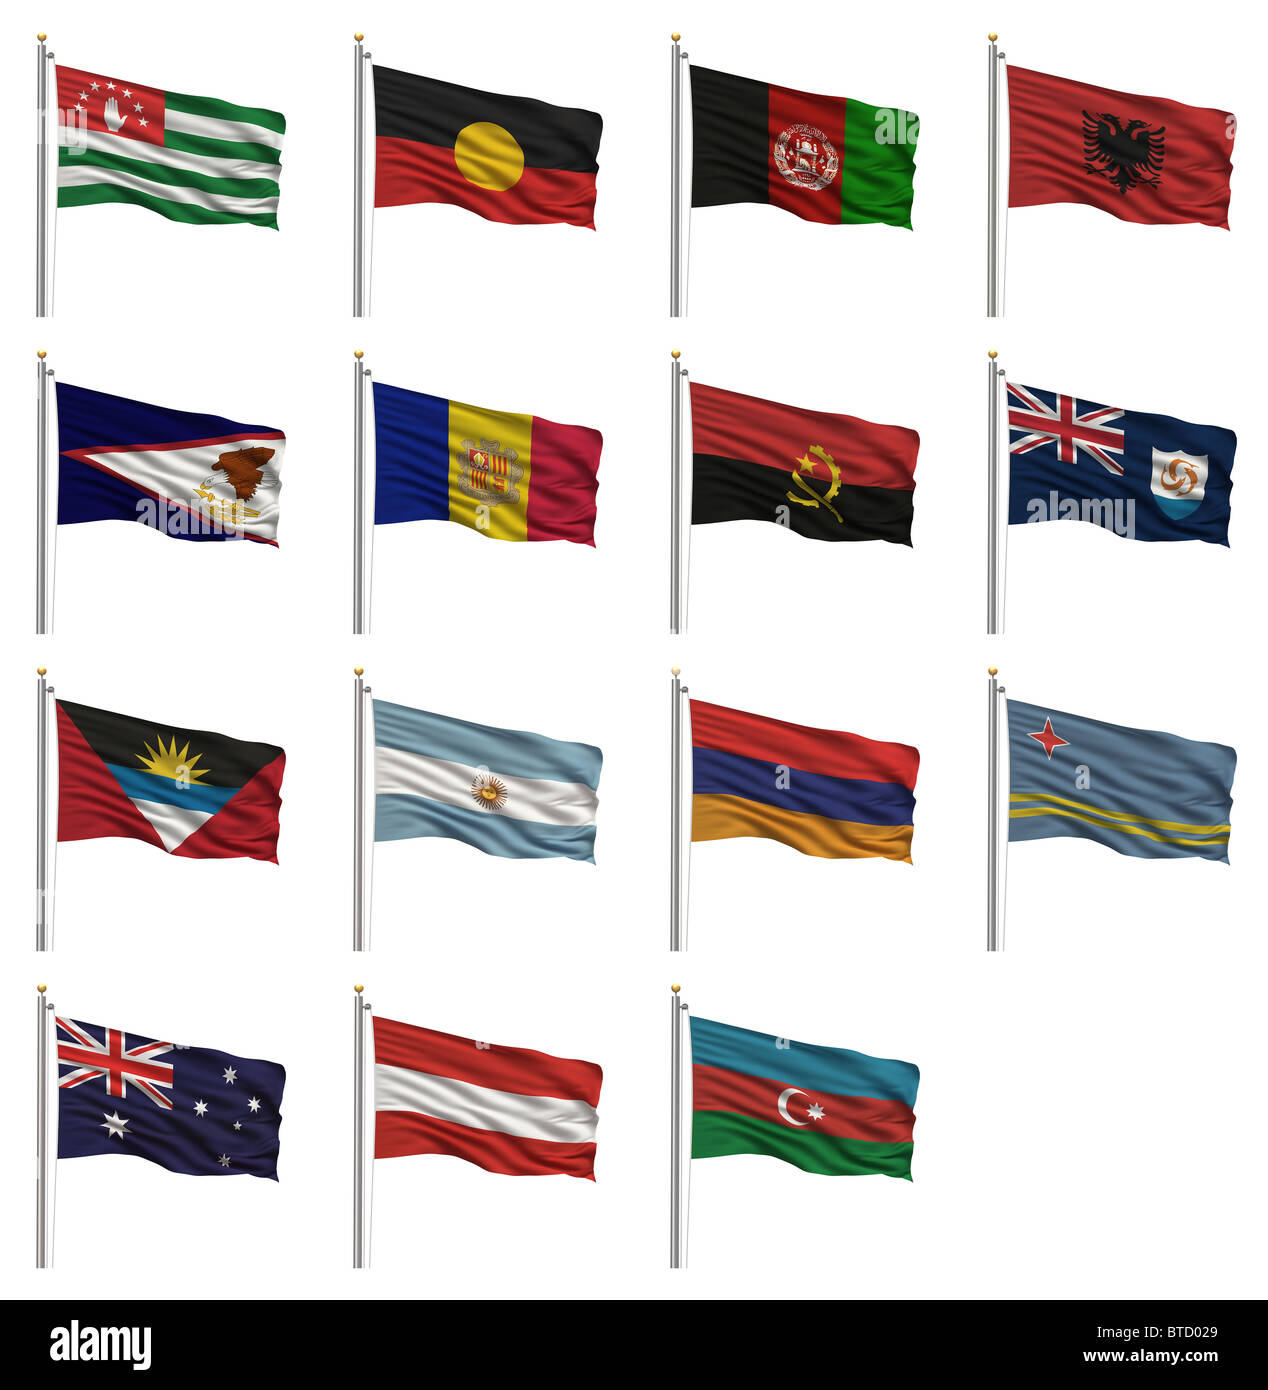 National flags starting with the letter A - Stock Image